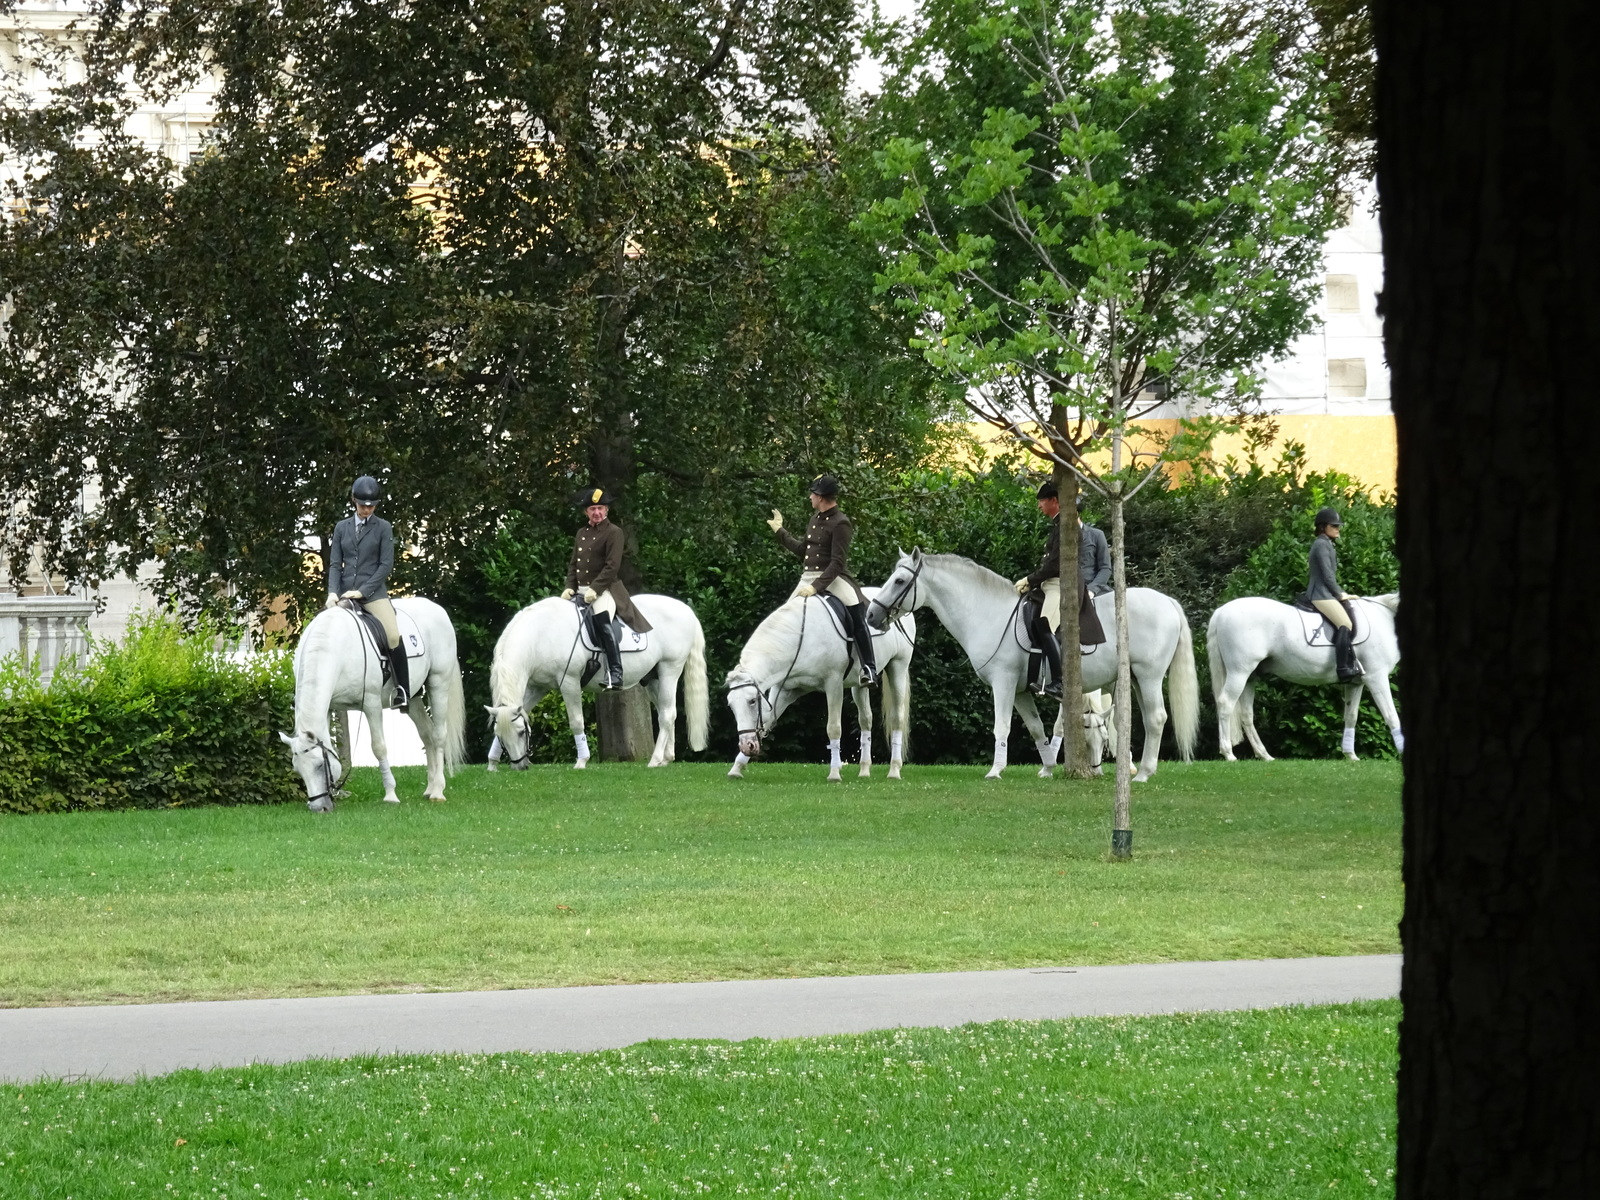 People on horses in the park